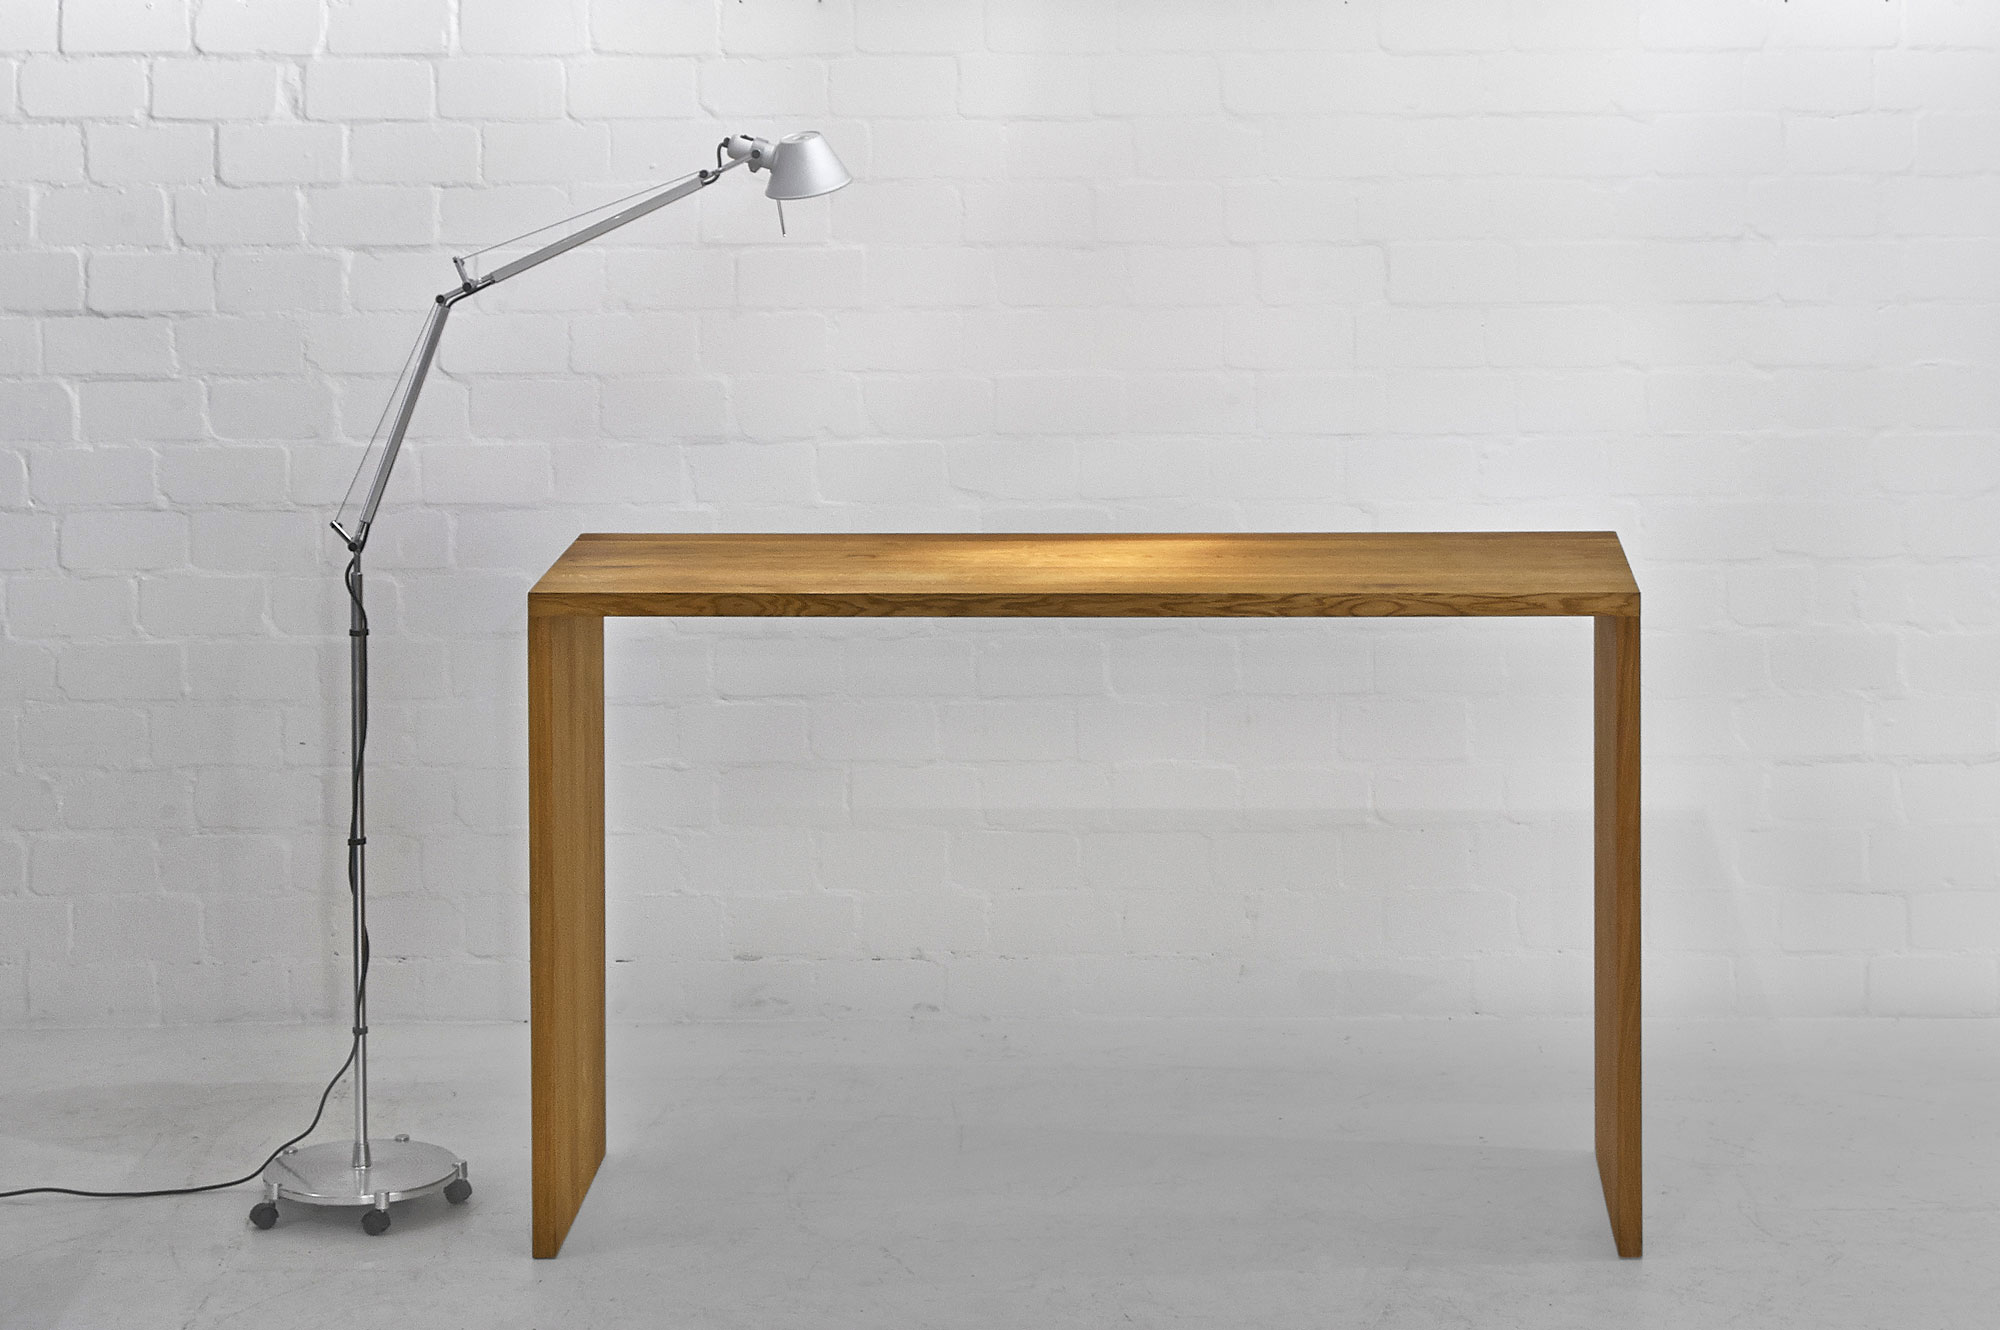 Solid Wood Console Table MENA CONSOLE 3727a custom made in solid wood by vitamin design